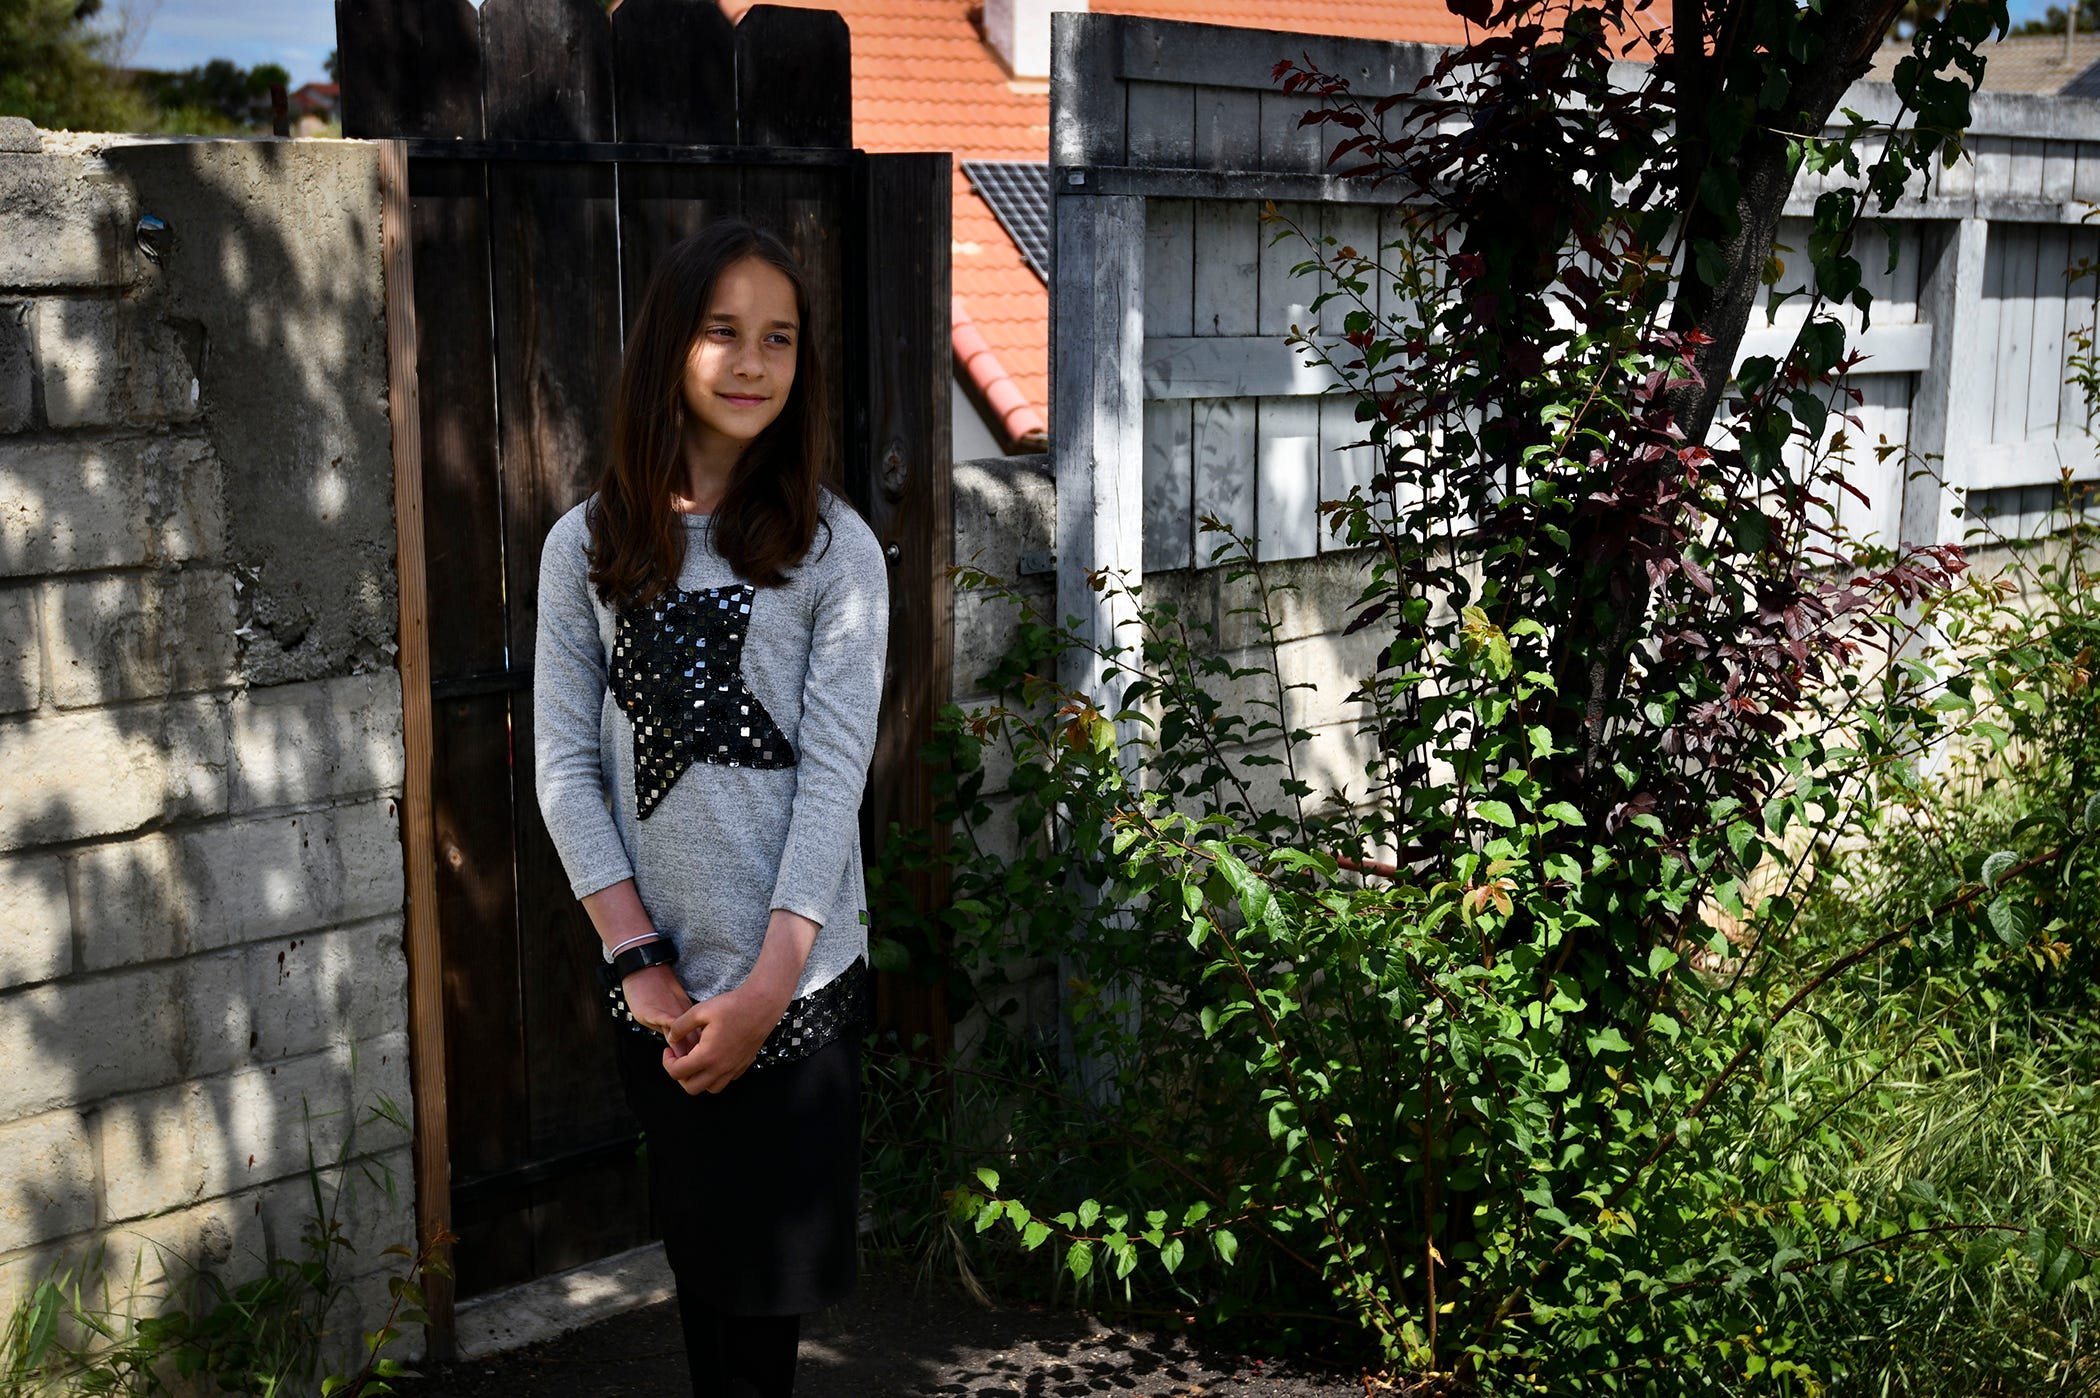 Netanya Trestman, 11, was just outside of the sanctuary babysitting children when the shooting started. After hearing gunshots, she immediately ran down the stairs behind the church and ran to find hiding. Netanya poses for an image in front of a gate behind the synagogue that she ran through to hide from the active shooter.